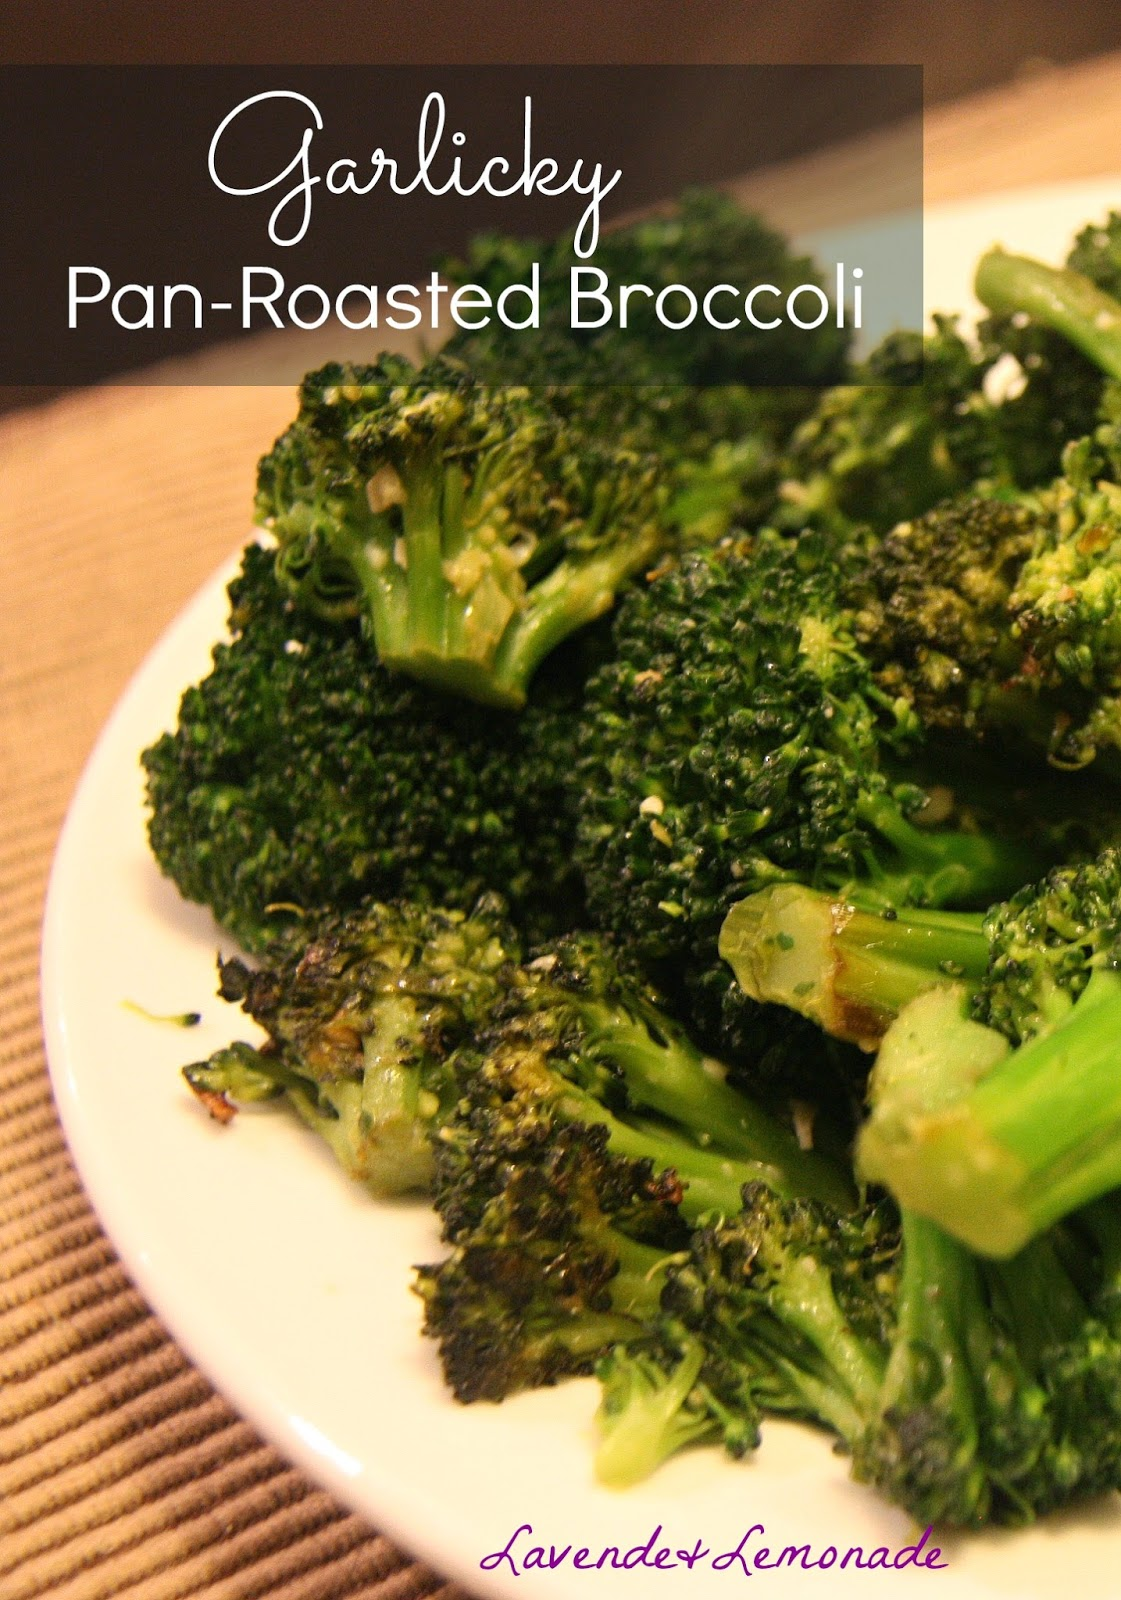 Garlicky Pan-Roasted Broccoli